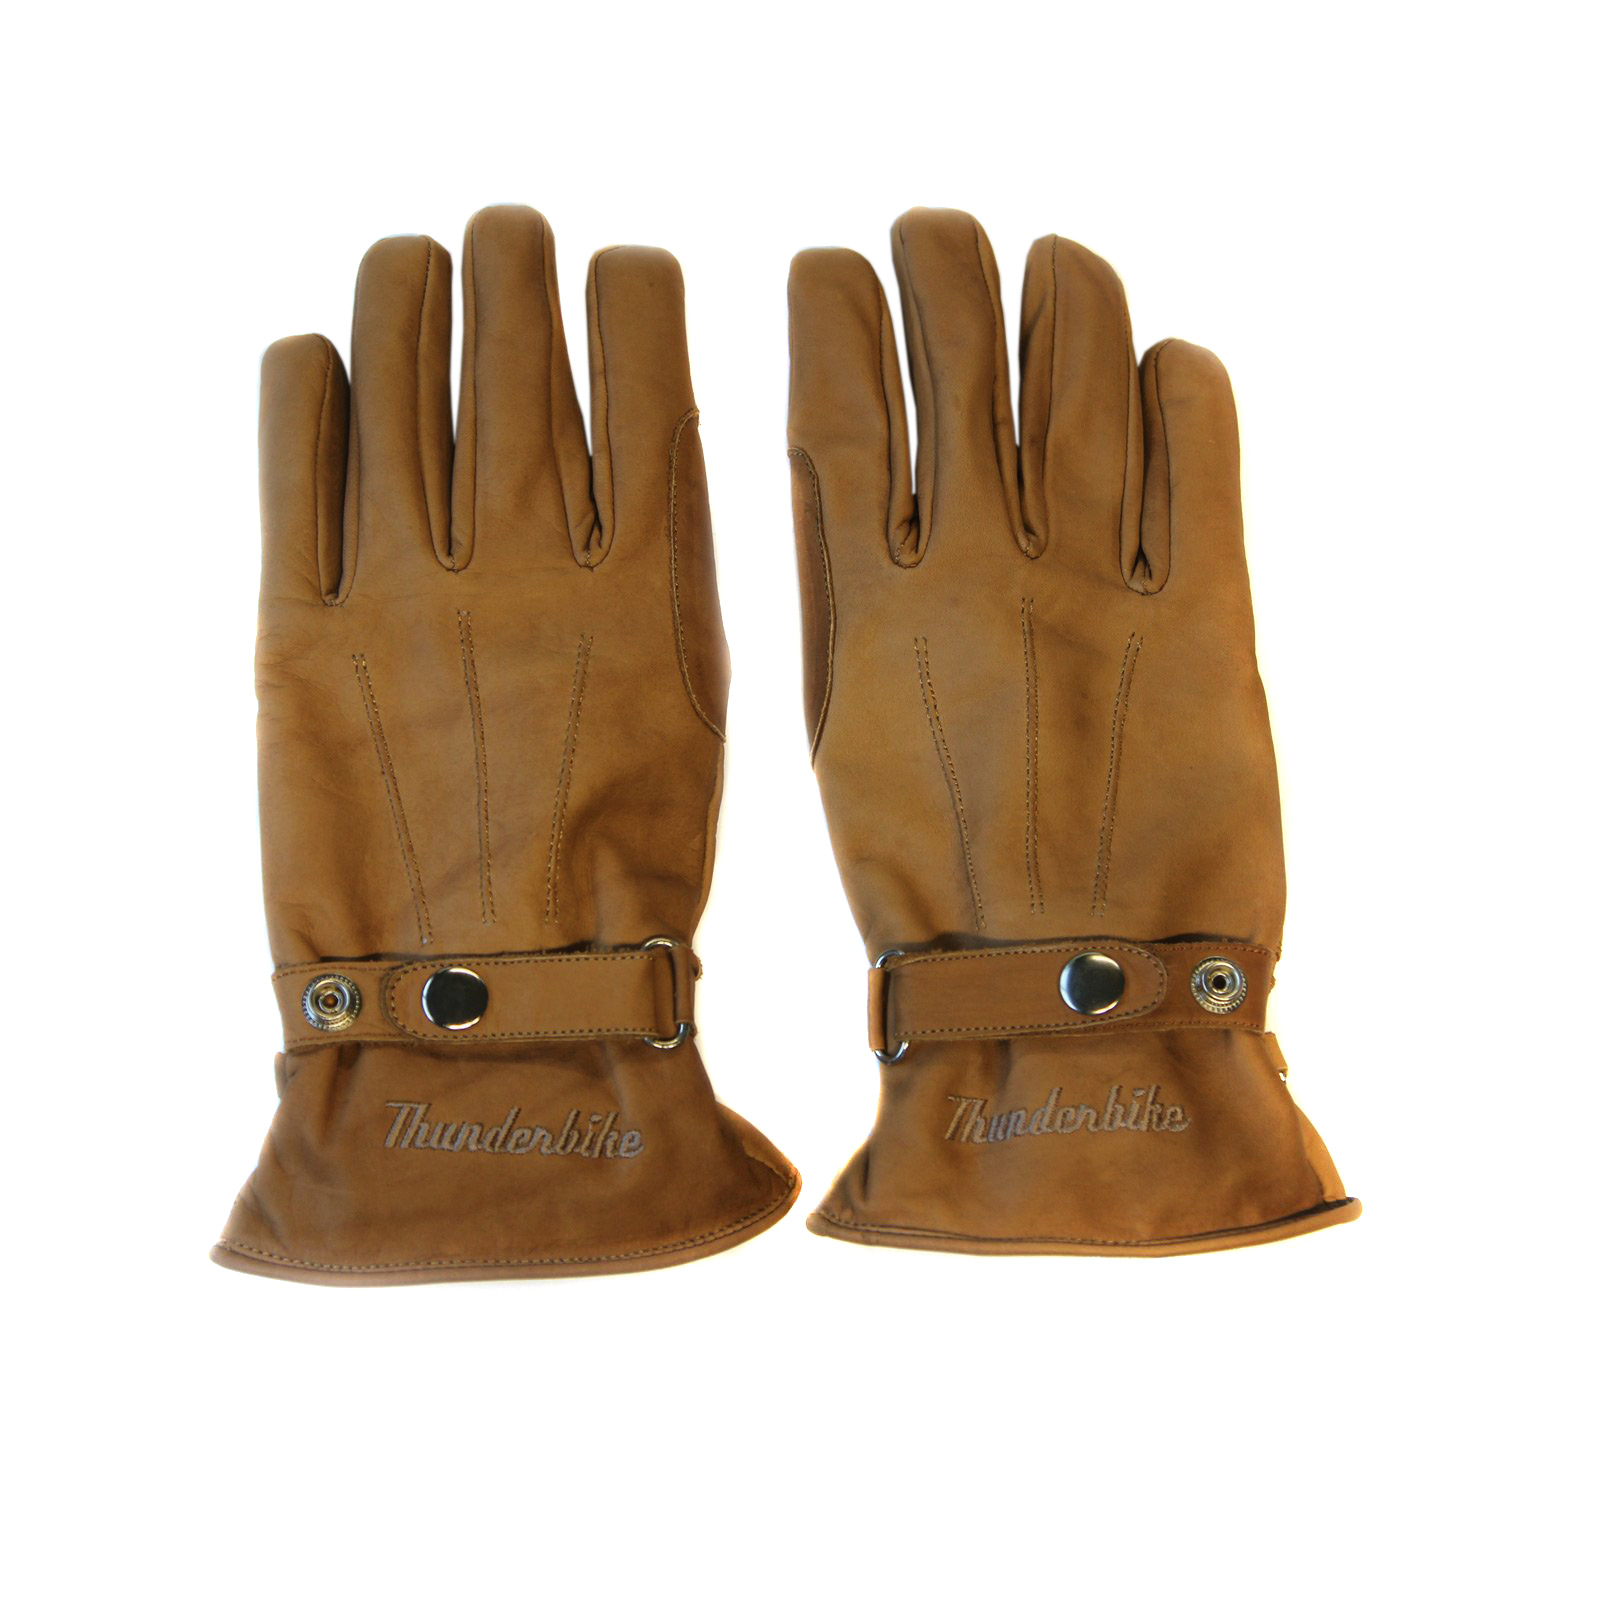 new product 09033 d73b5 ... Thunderbike Clothing Thunderbike Gloves Retro, camel - 19-70-040V ...